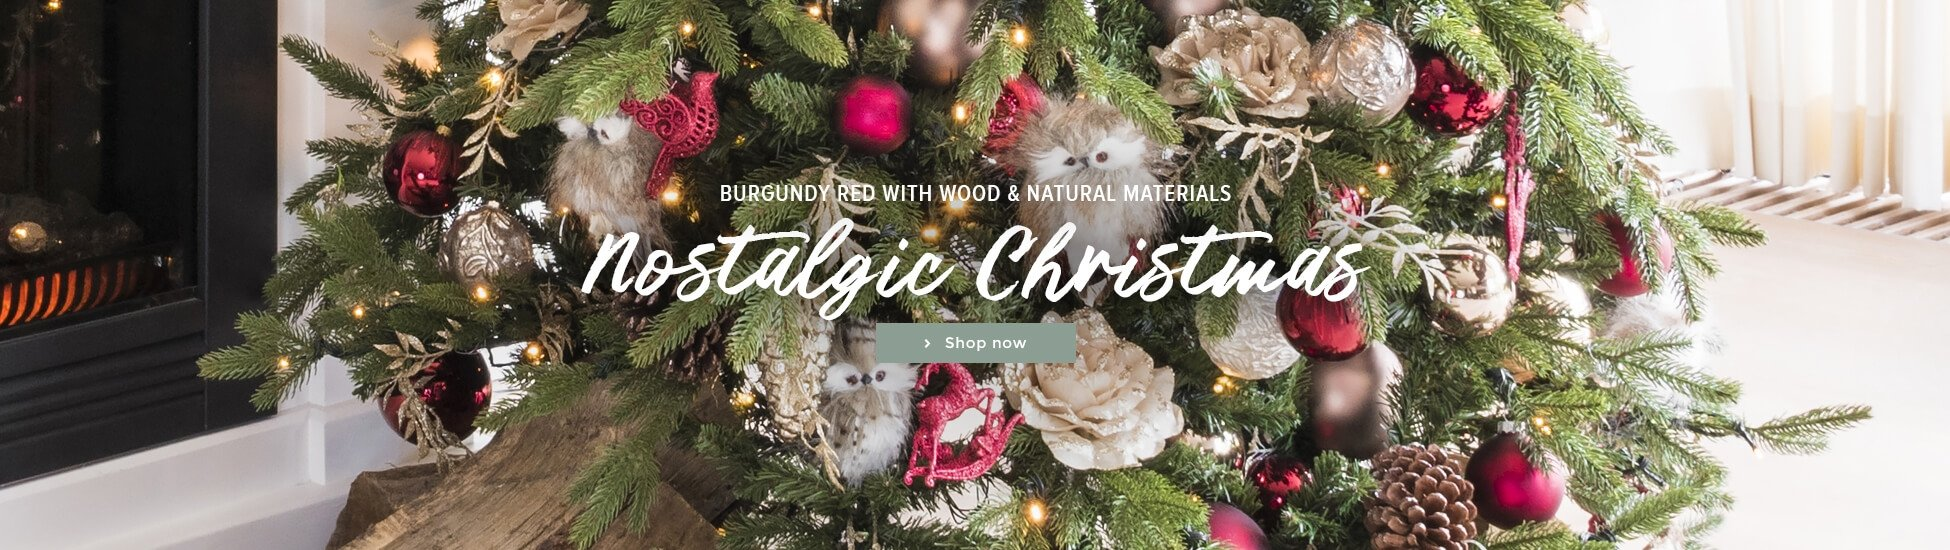 All your Christmas decorations 20/20 online available